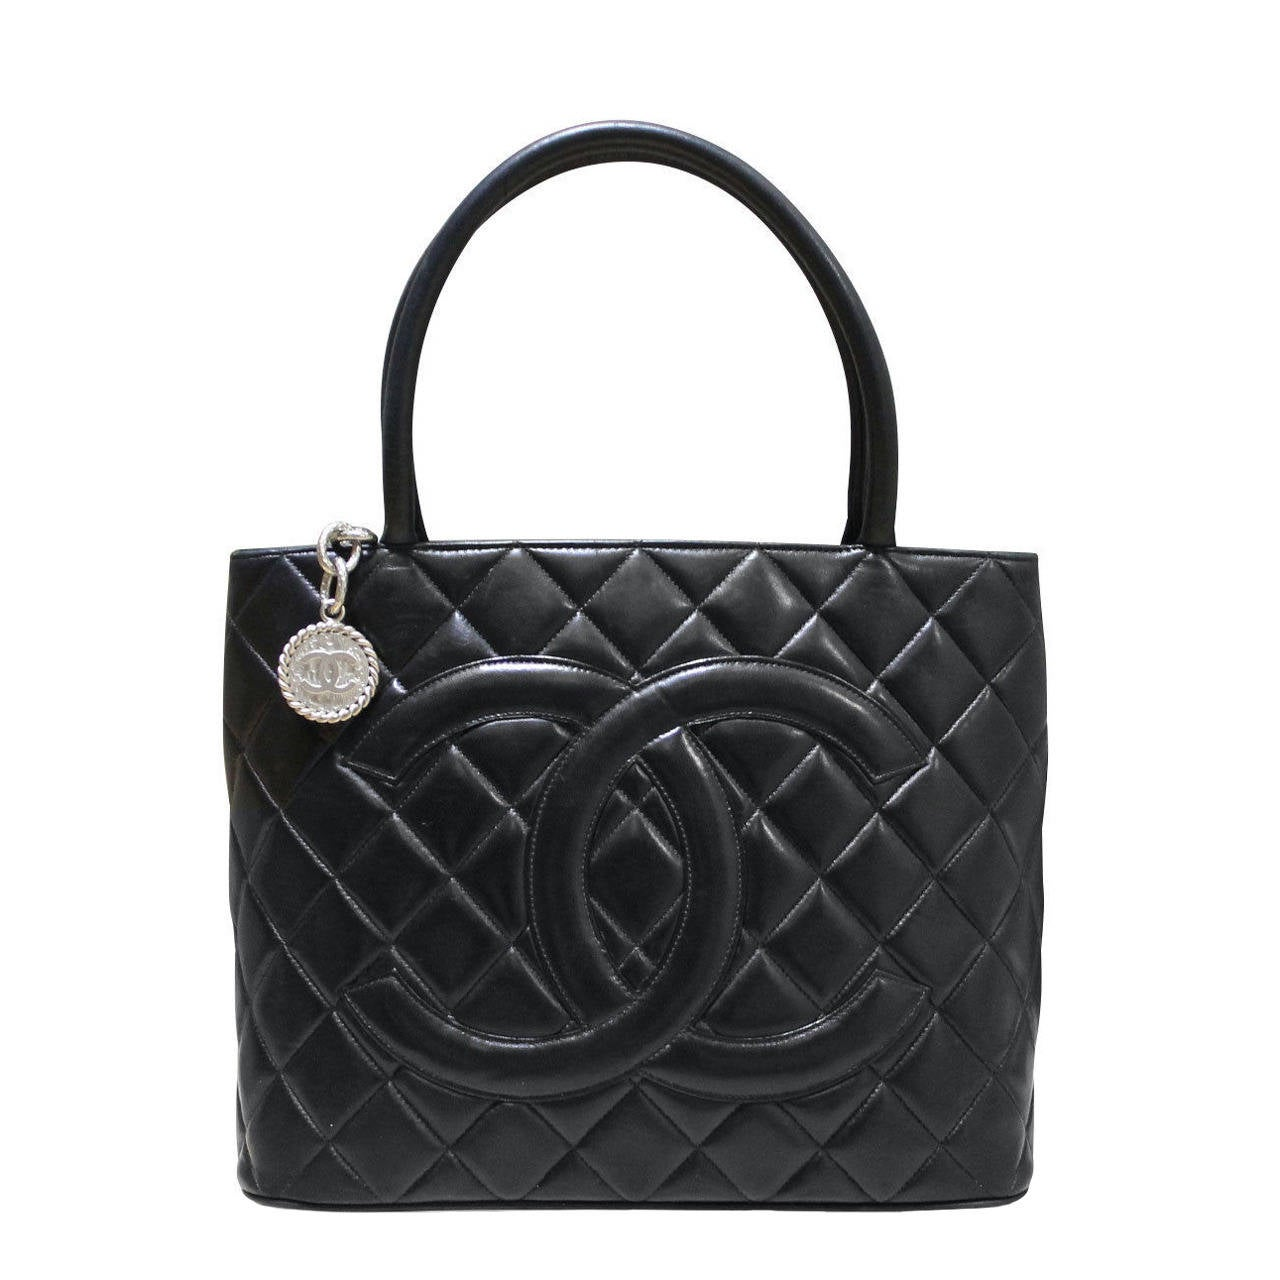 e515272453a449 Chanel Bag Collection 2002. Chanel 2002 Black Caviar Chevron Quilted Camera  Case Bag at 1stdibs